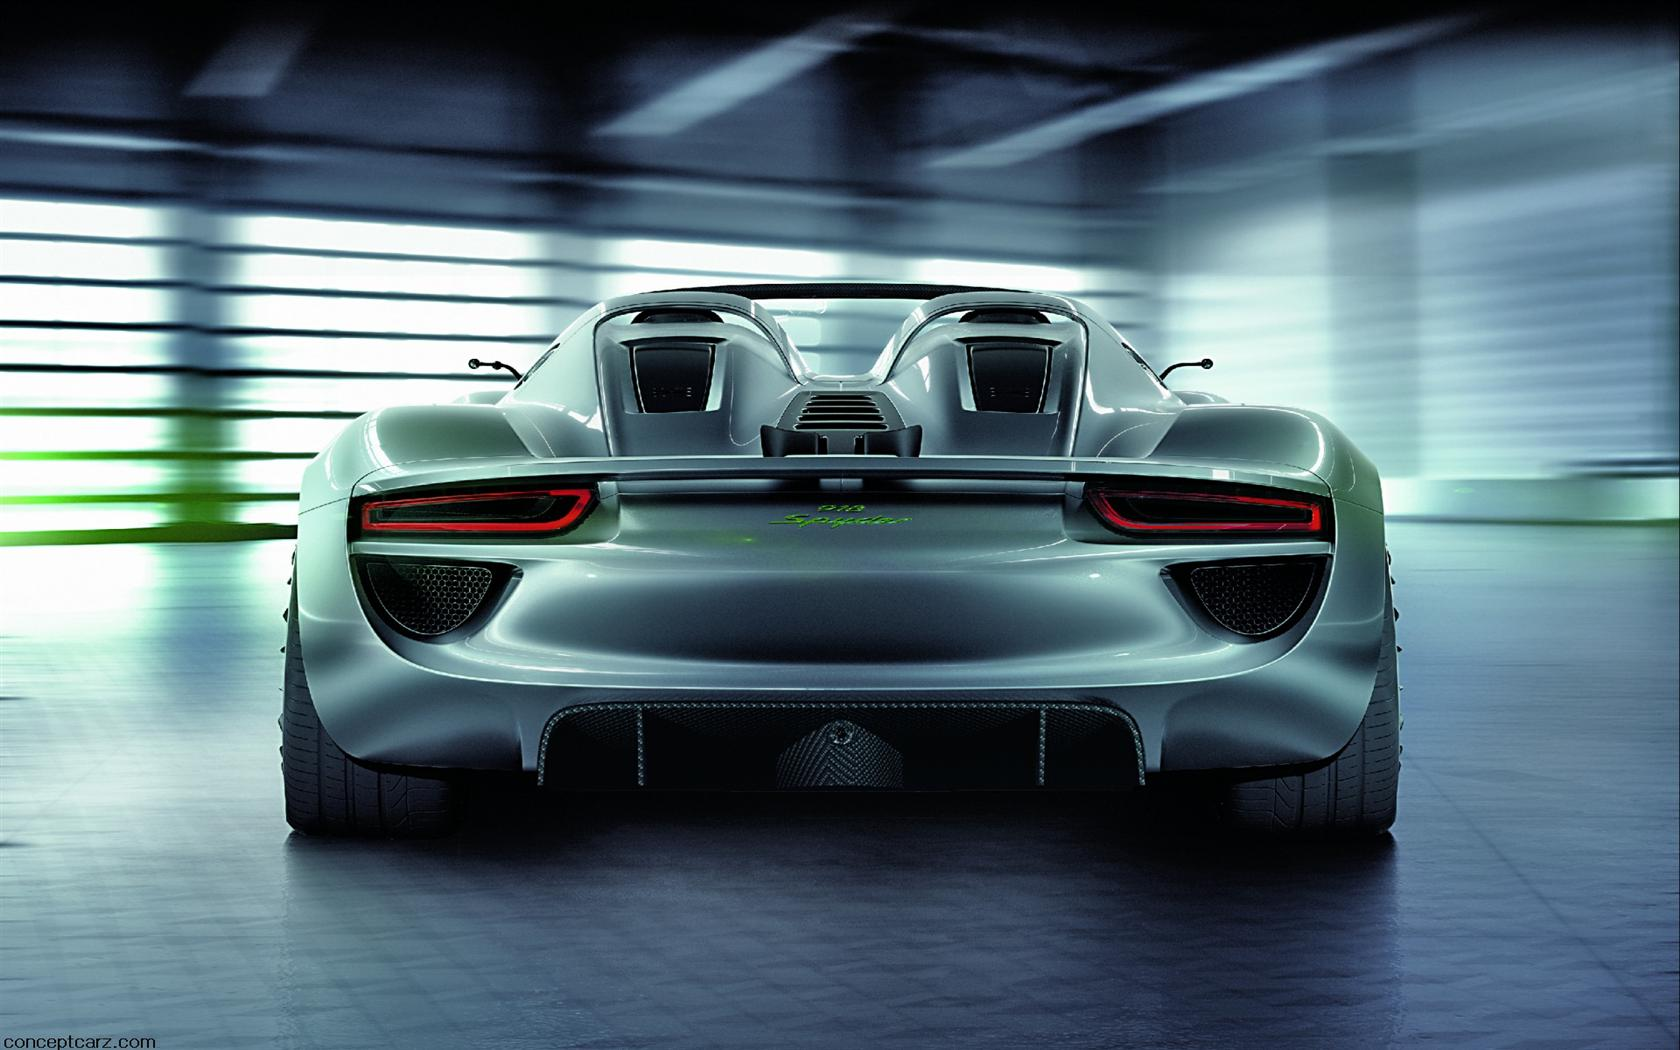 2010 porsche 918 spyder concept images photo porsche spyder hybrid 918 wallp. Black Bedroom Furniture Sets. Home Design Ideas